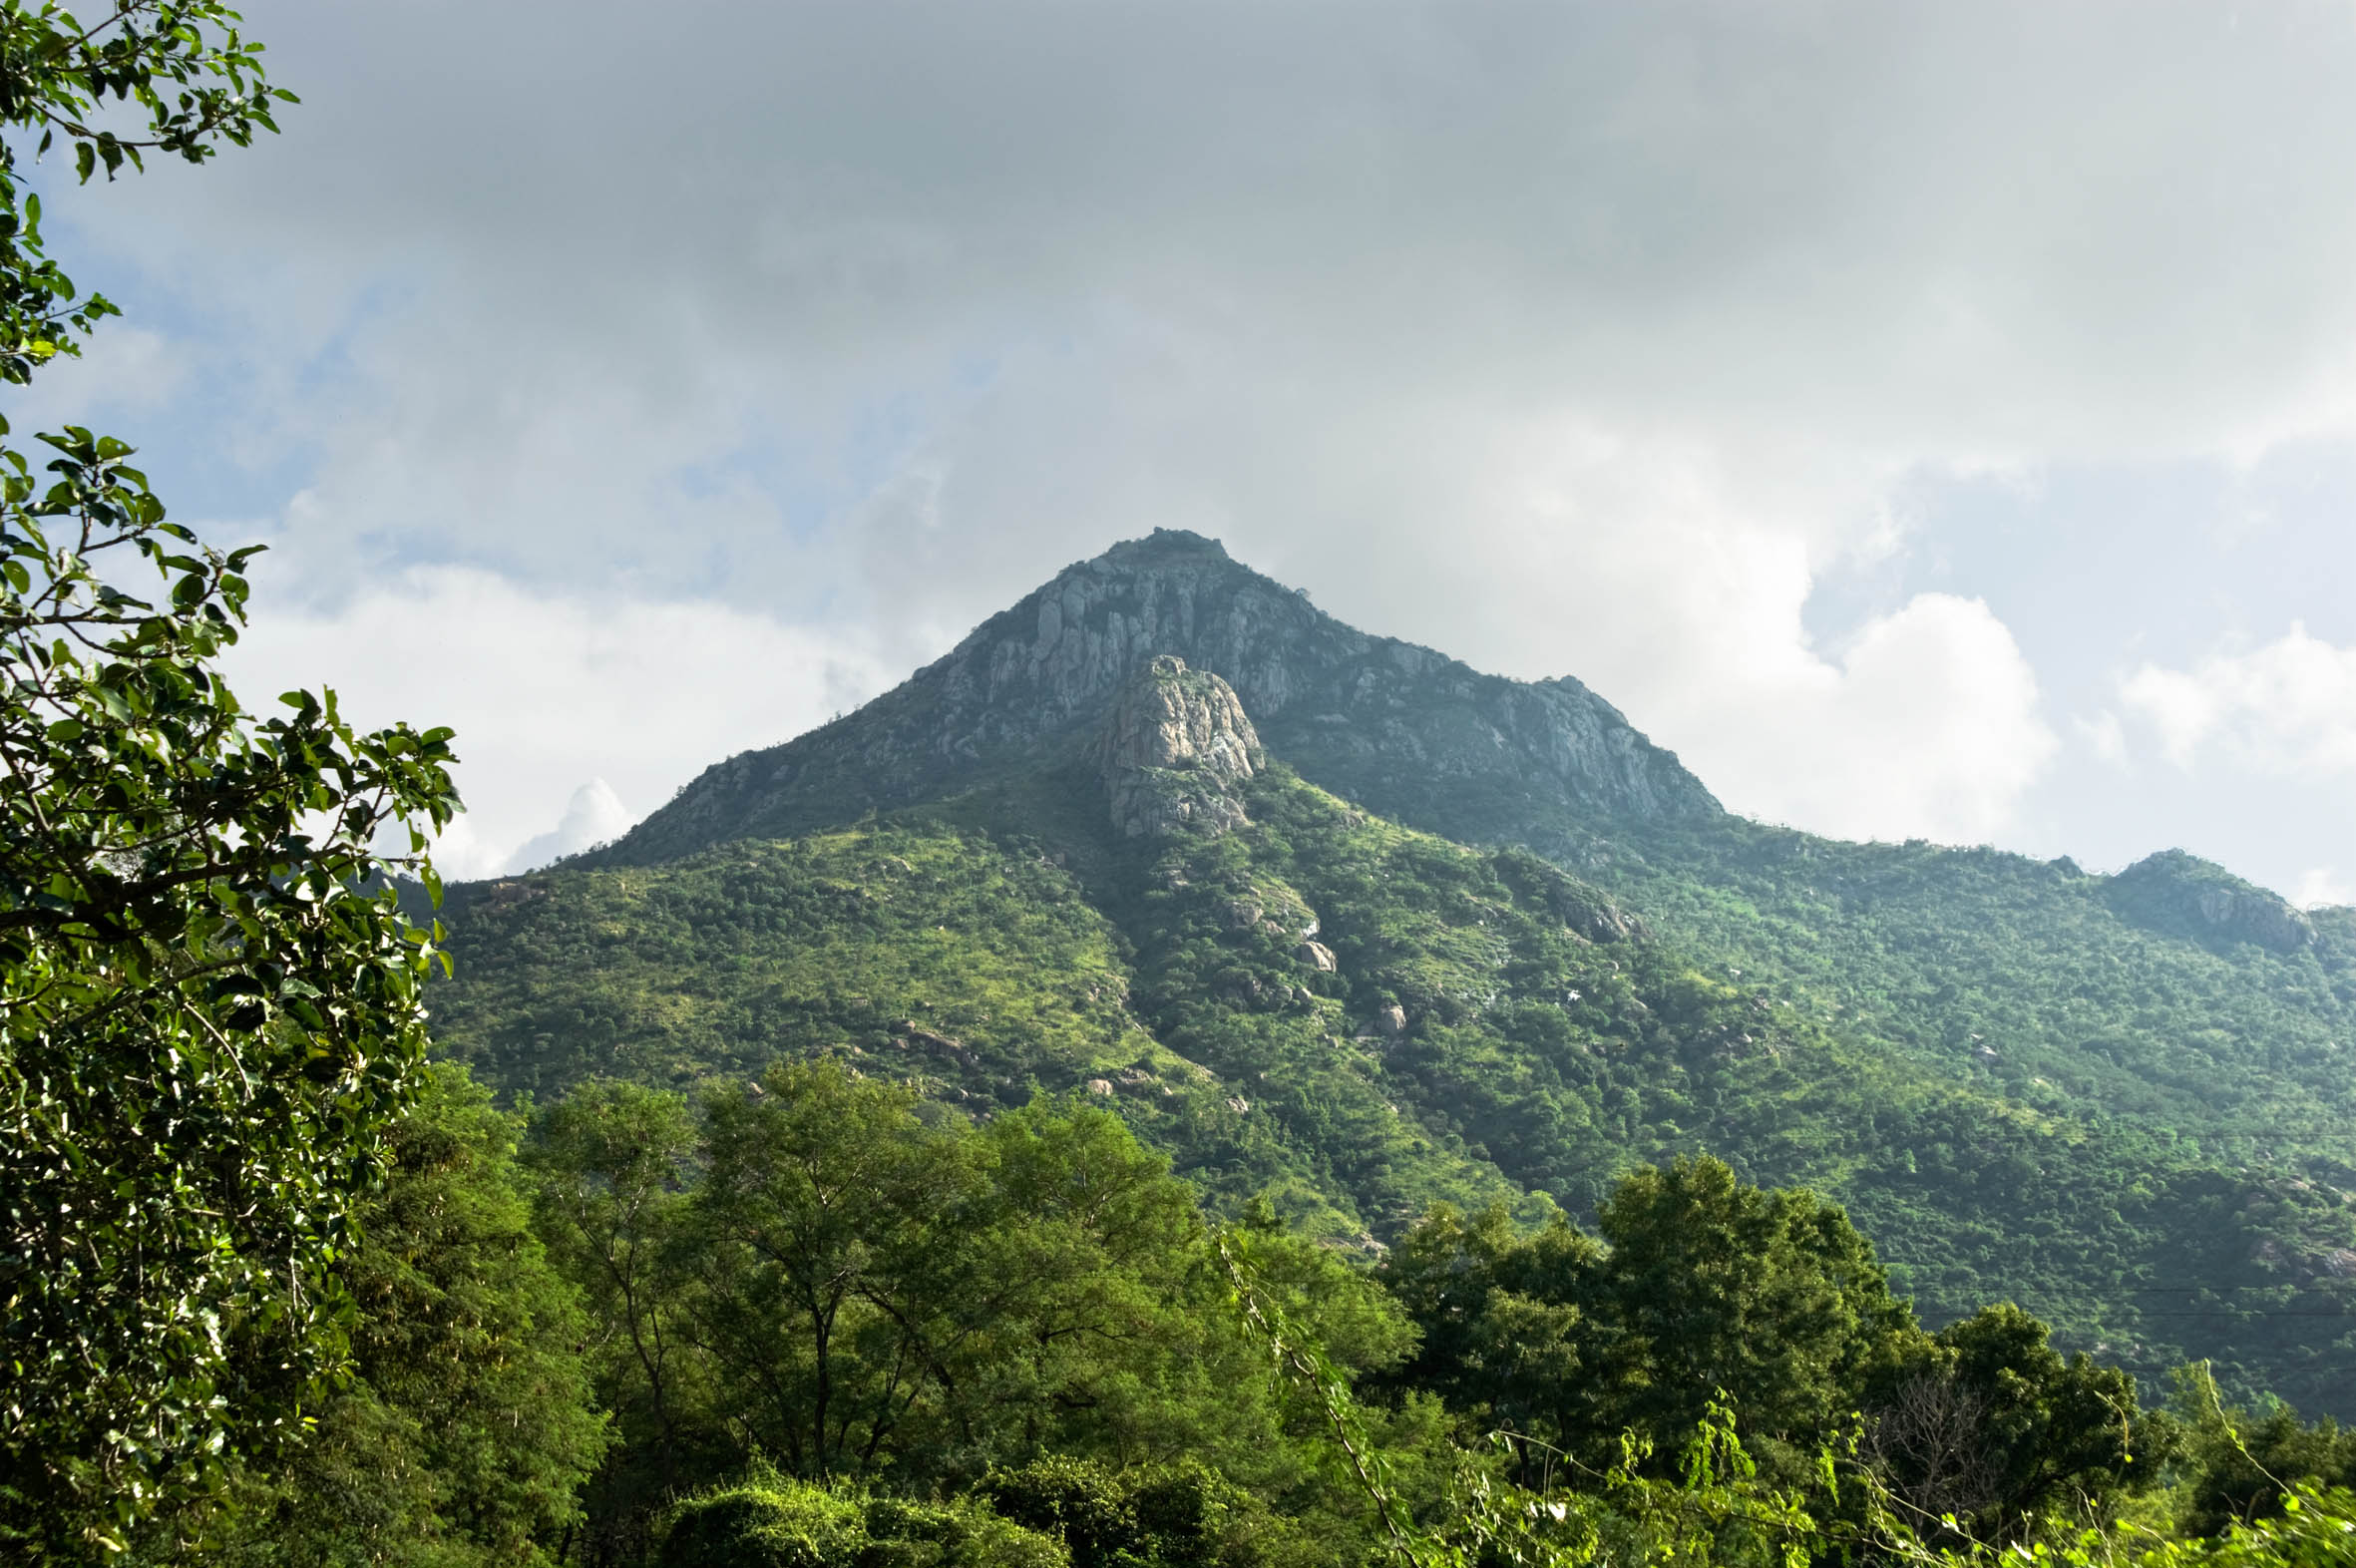 Arunachala hill, the place where Ramana would remain.